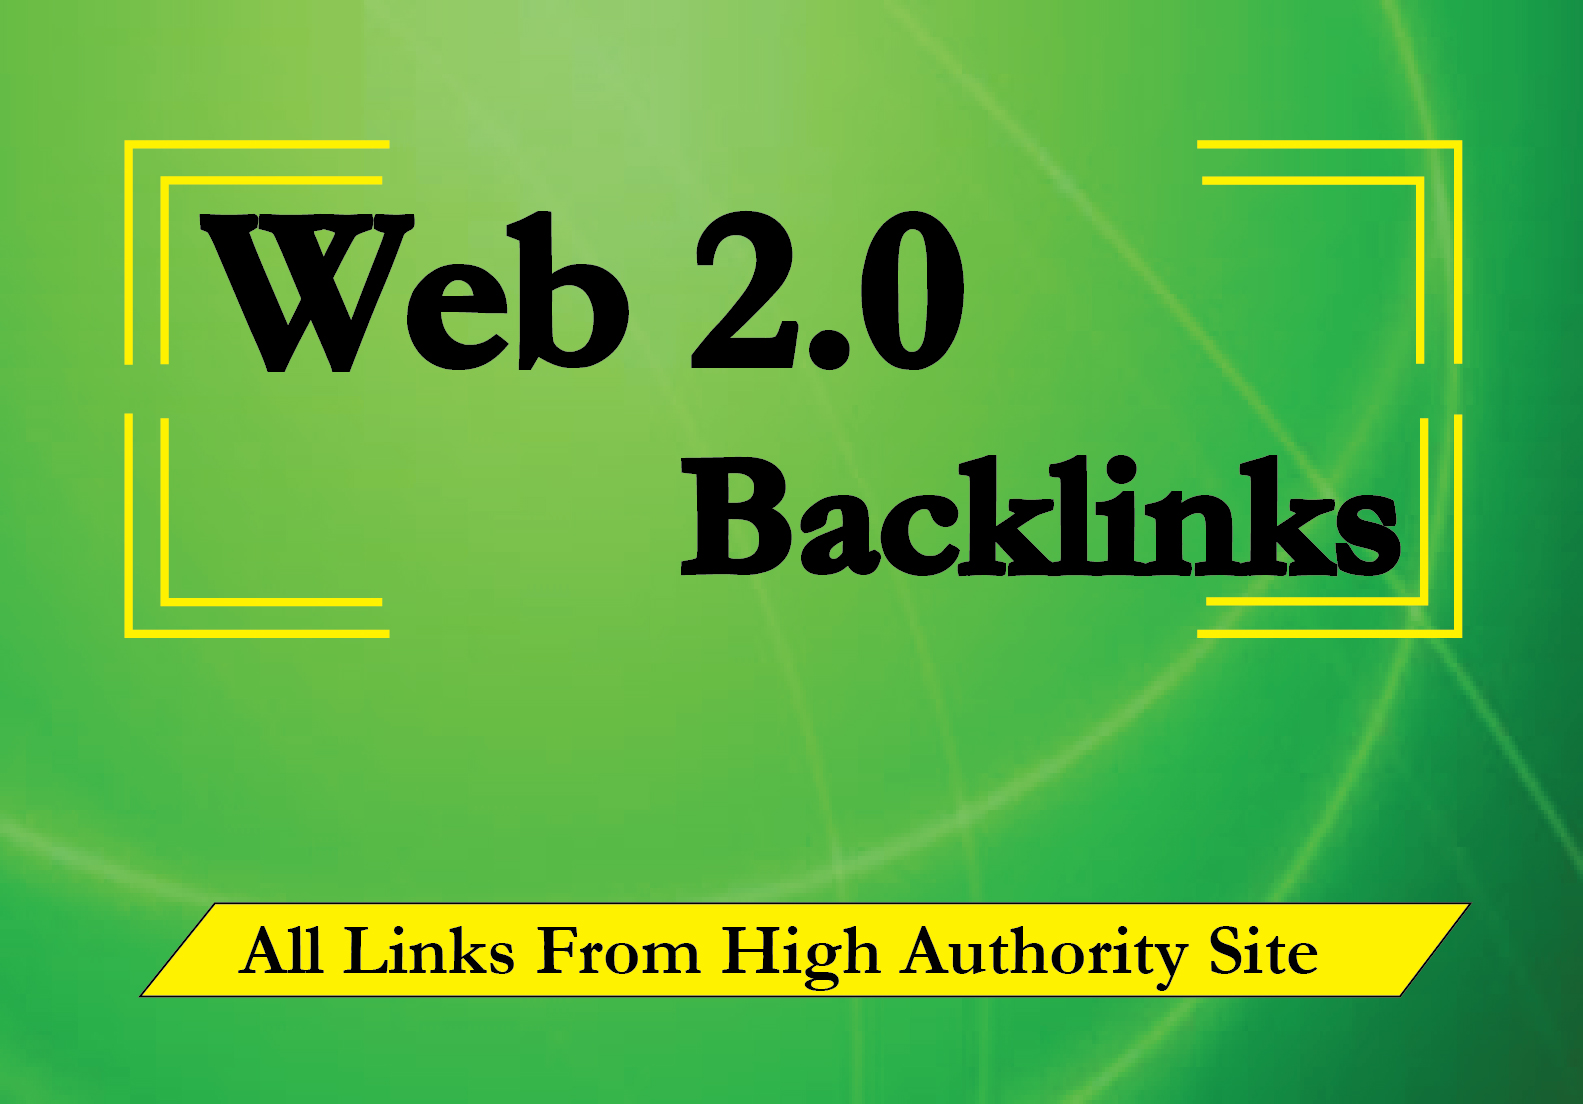 20 High Authority Manual Web 2.0 Backlinks